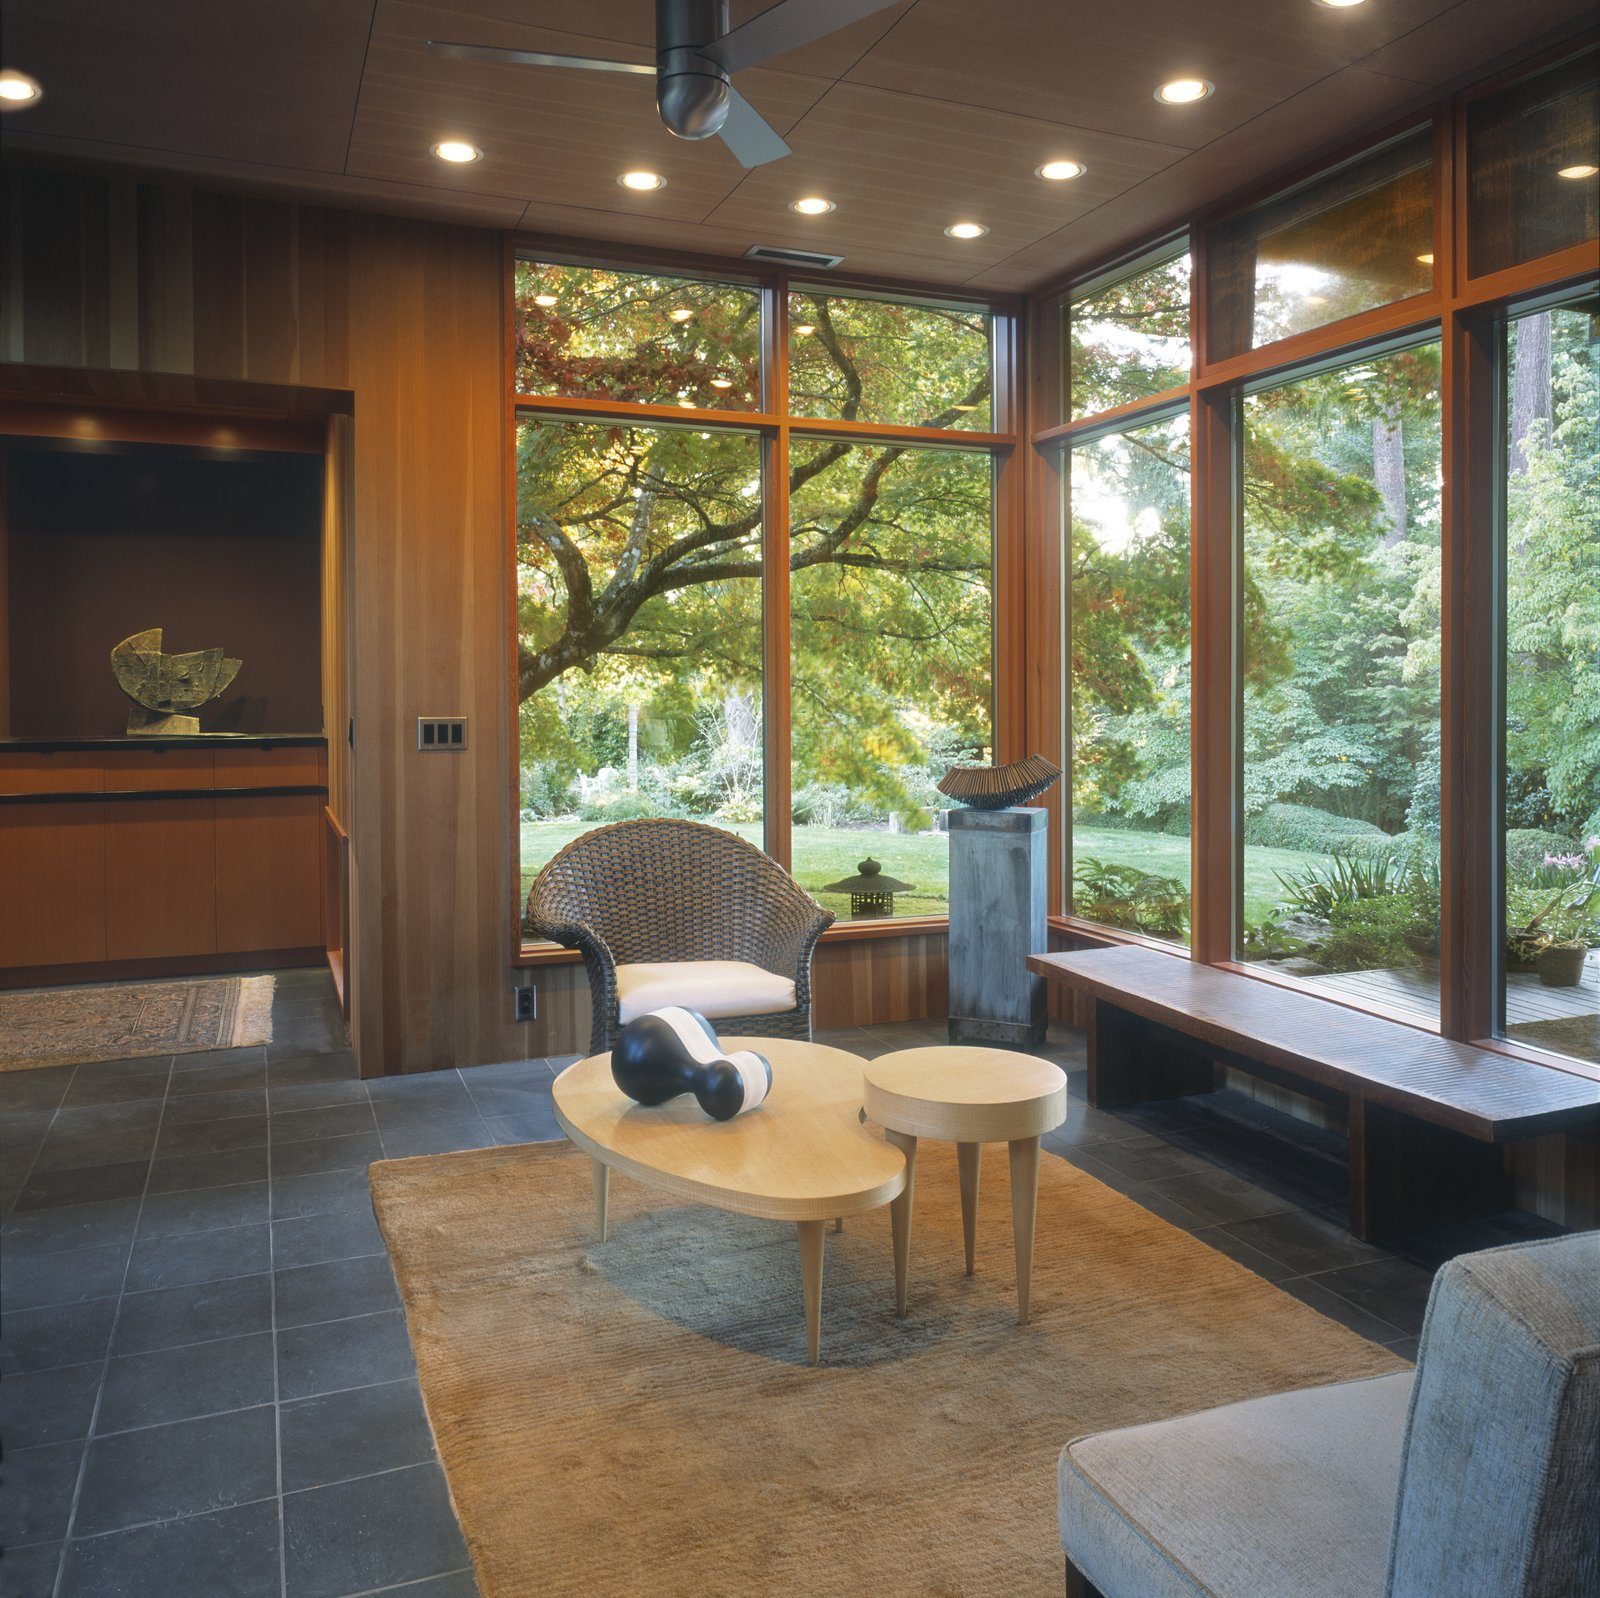 The sitting room enjoys views towards the lush garden beyond.    Belluschi Addition by Richard Brown Architect